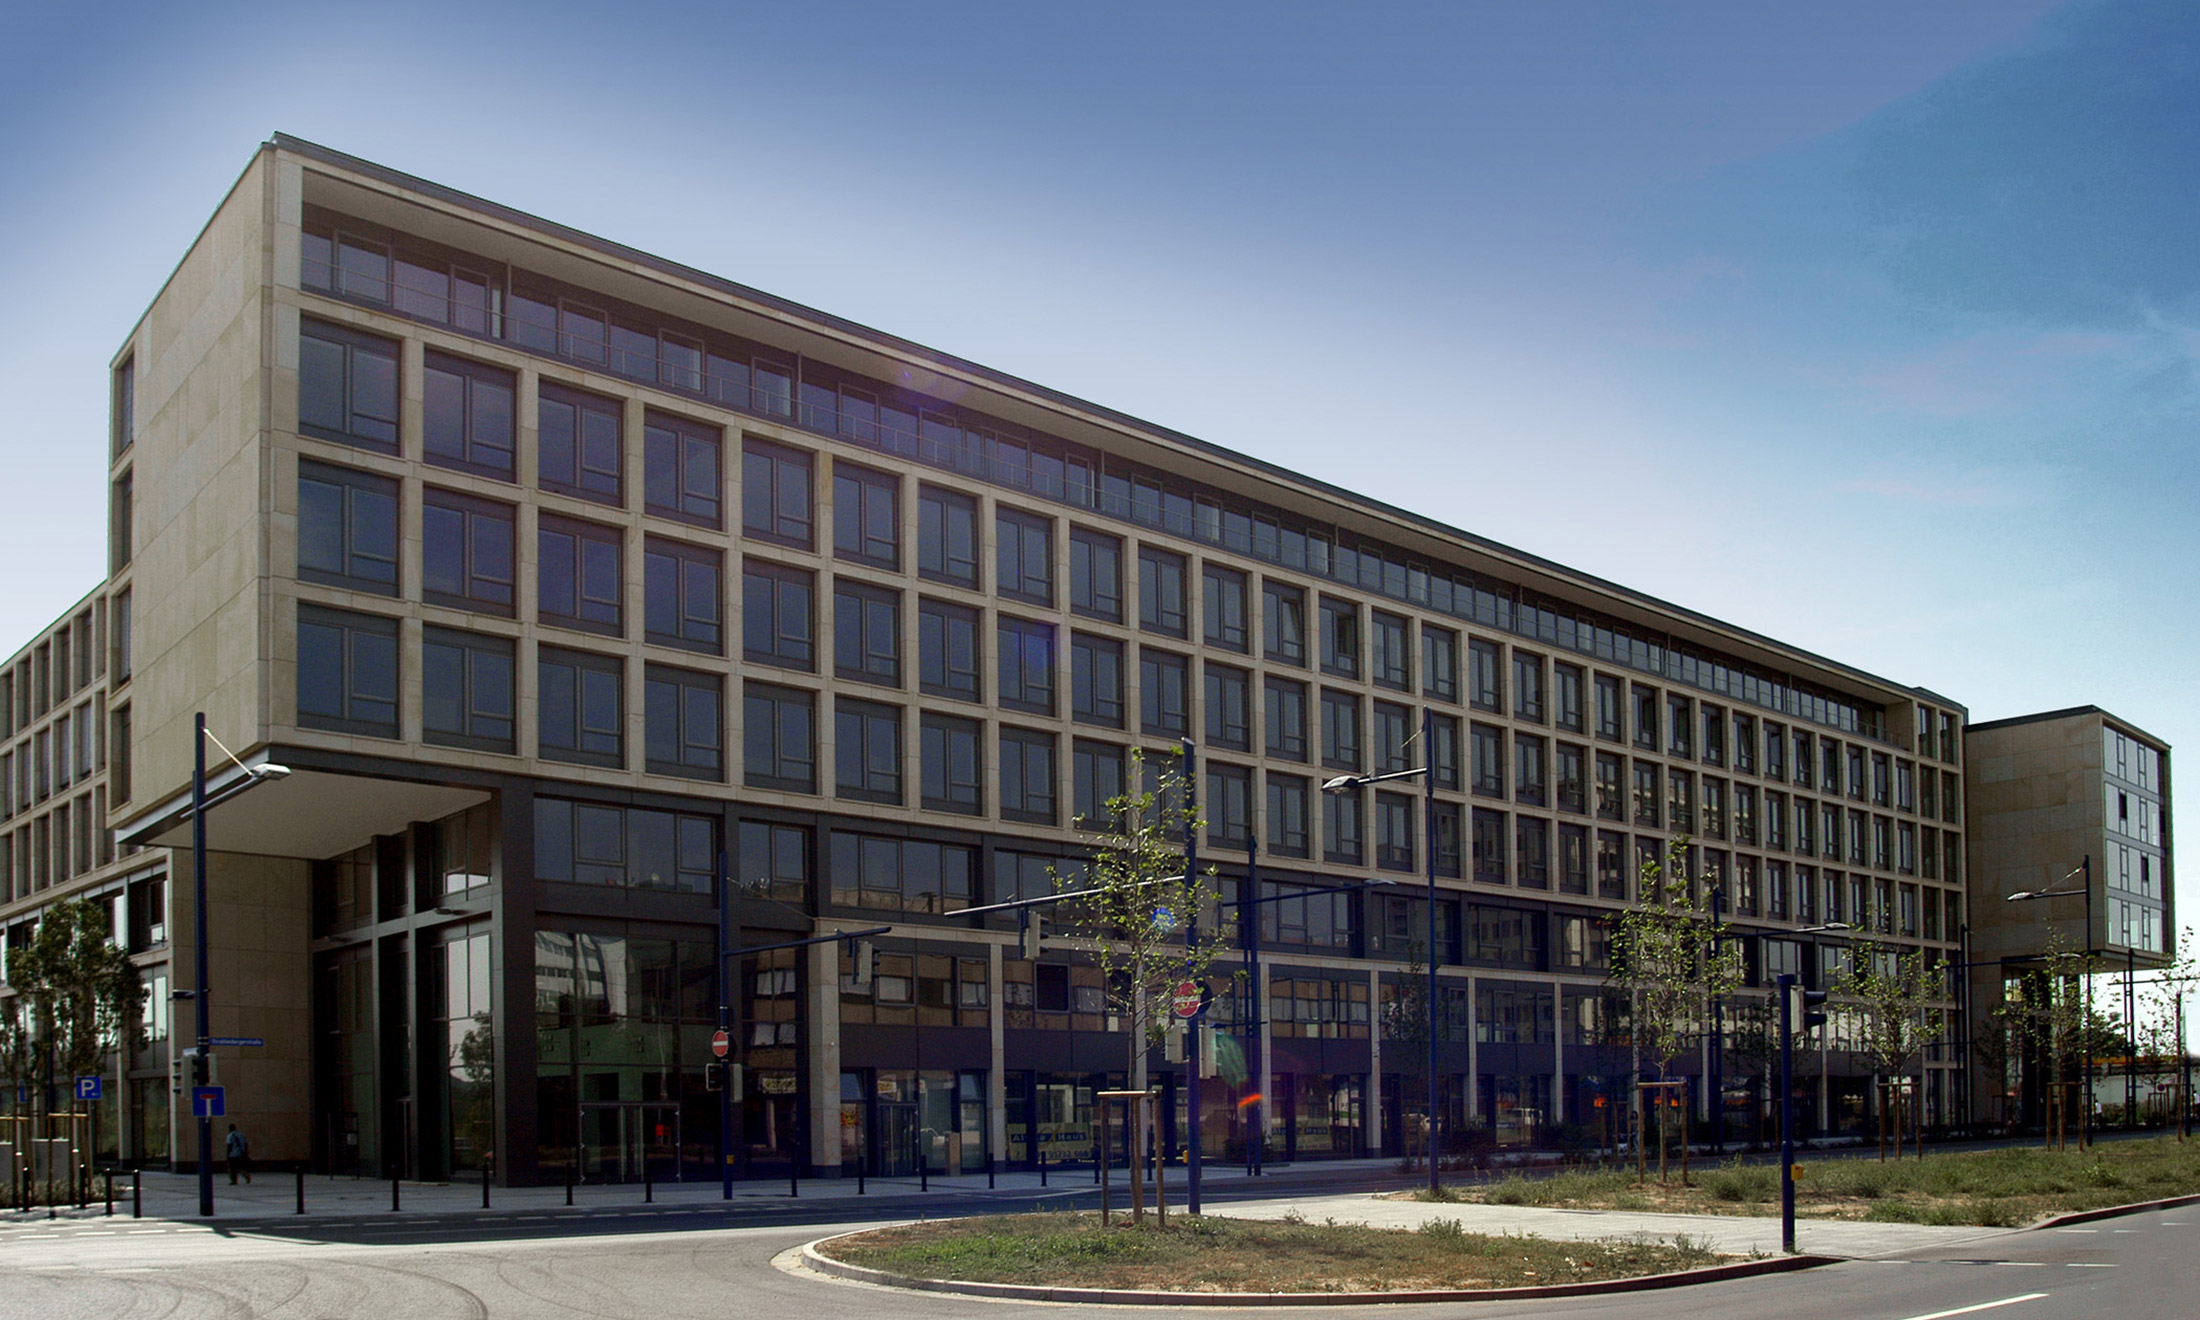 building an office. ESG - Eurofacility Solutions GmbH Overview: Have A New FM Contract To Manage An Office Building In Offenbach